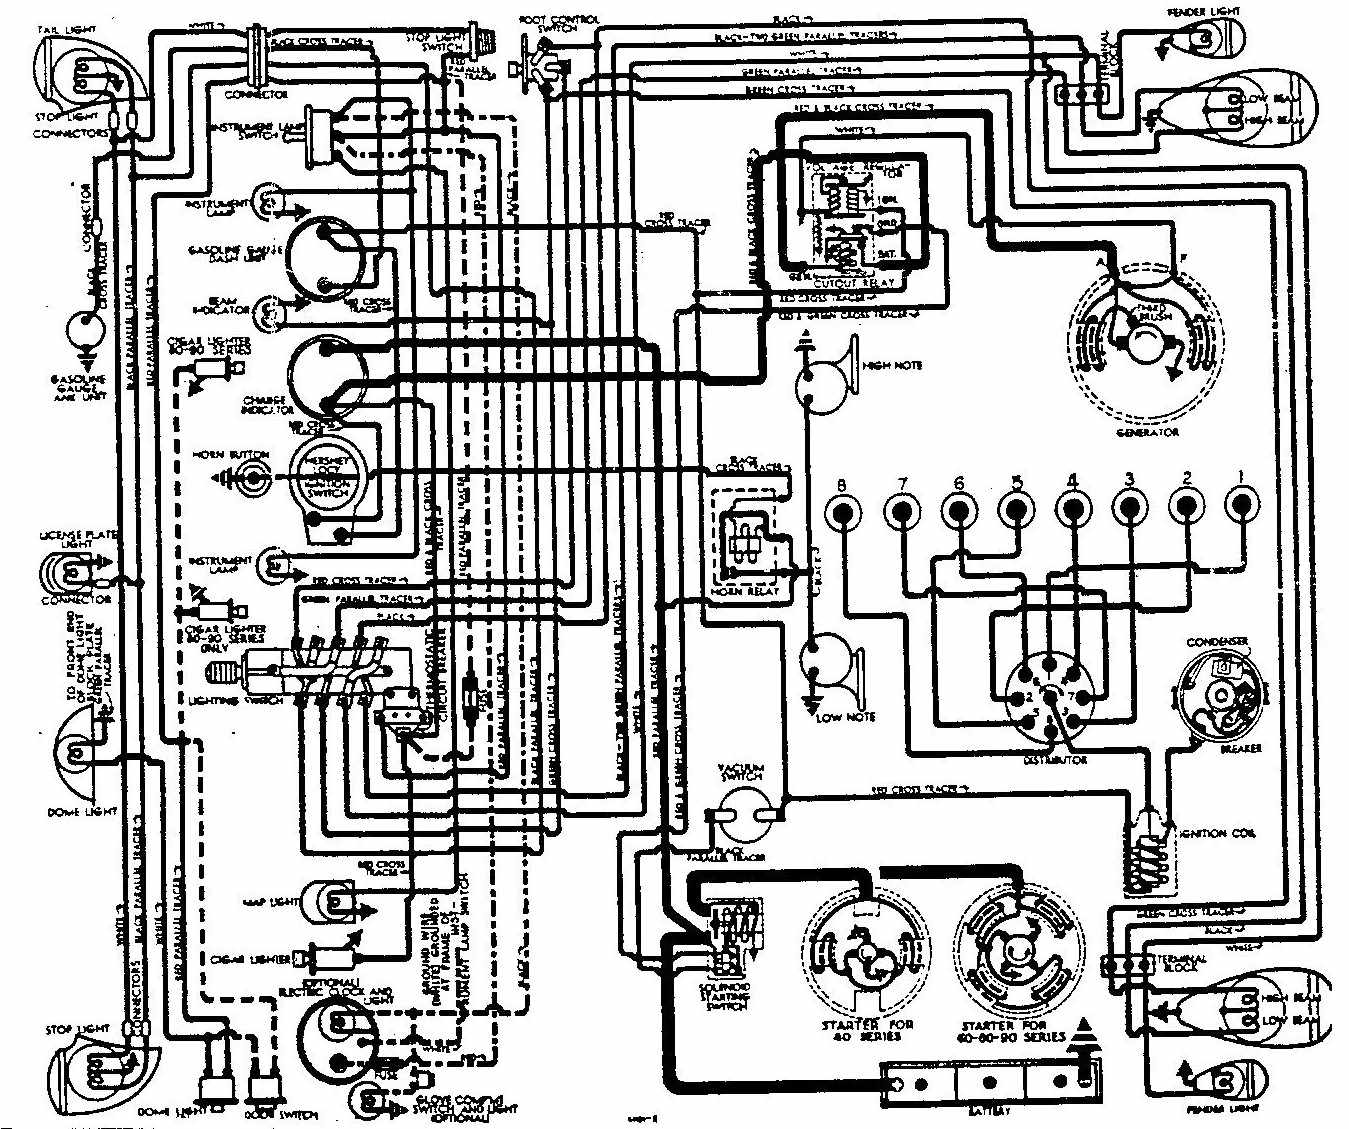 Buick Lesabre Wiring Diagram Additionally 1998 Bmw Wiring Diagrams